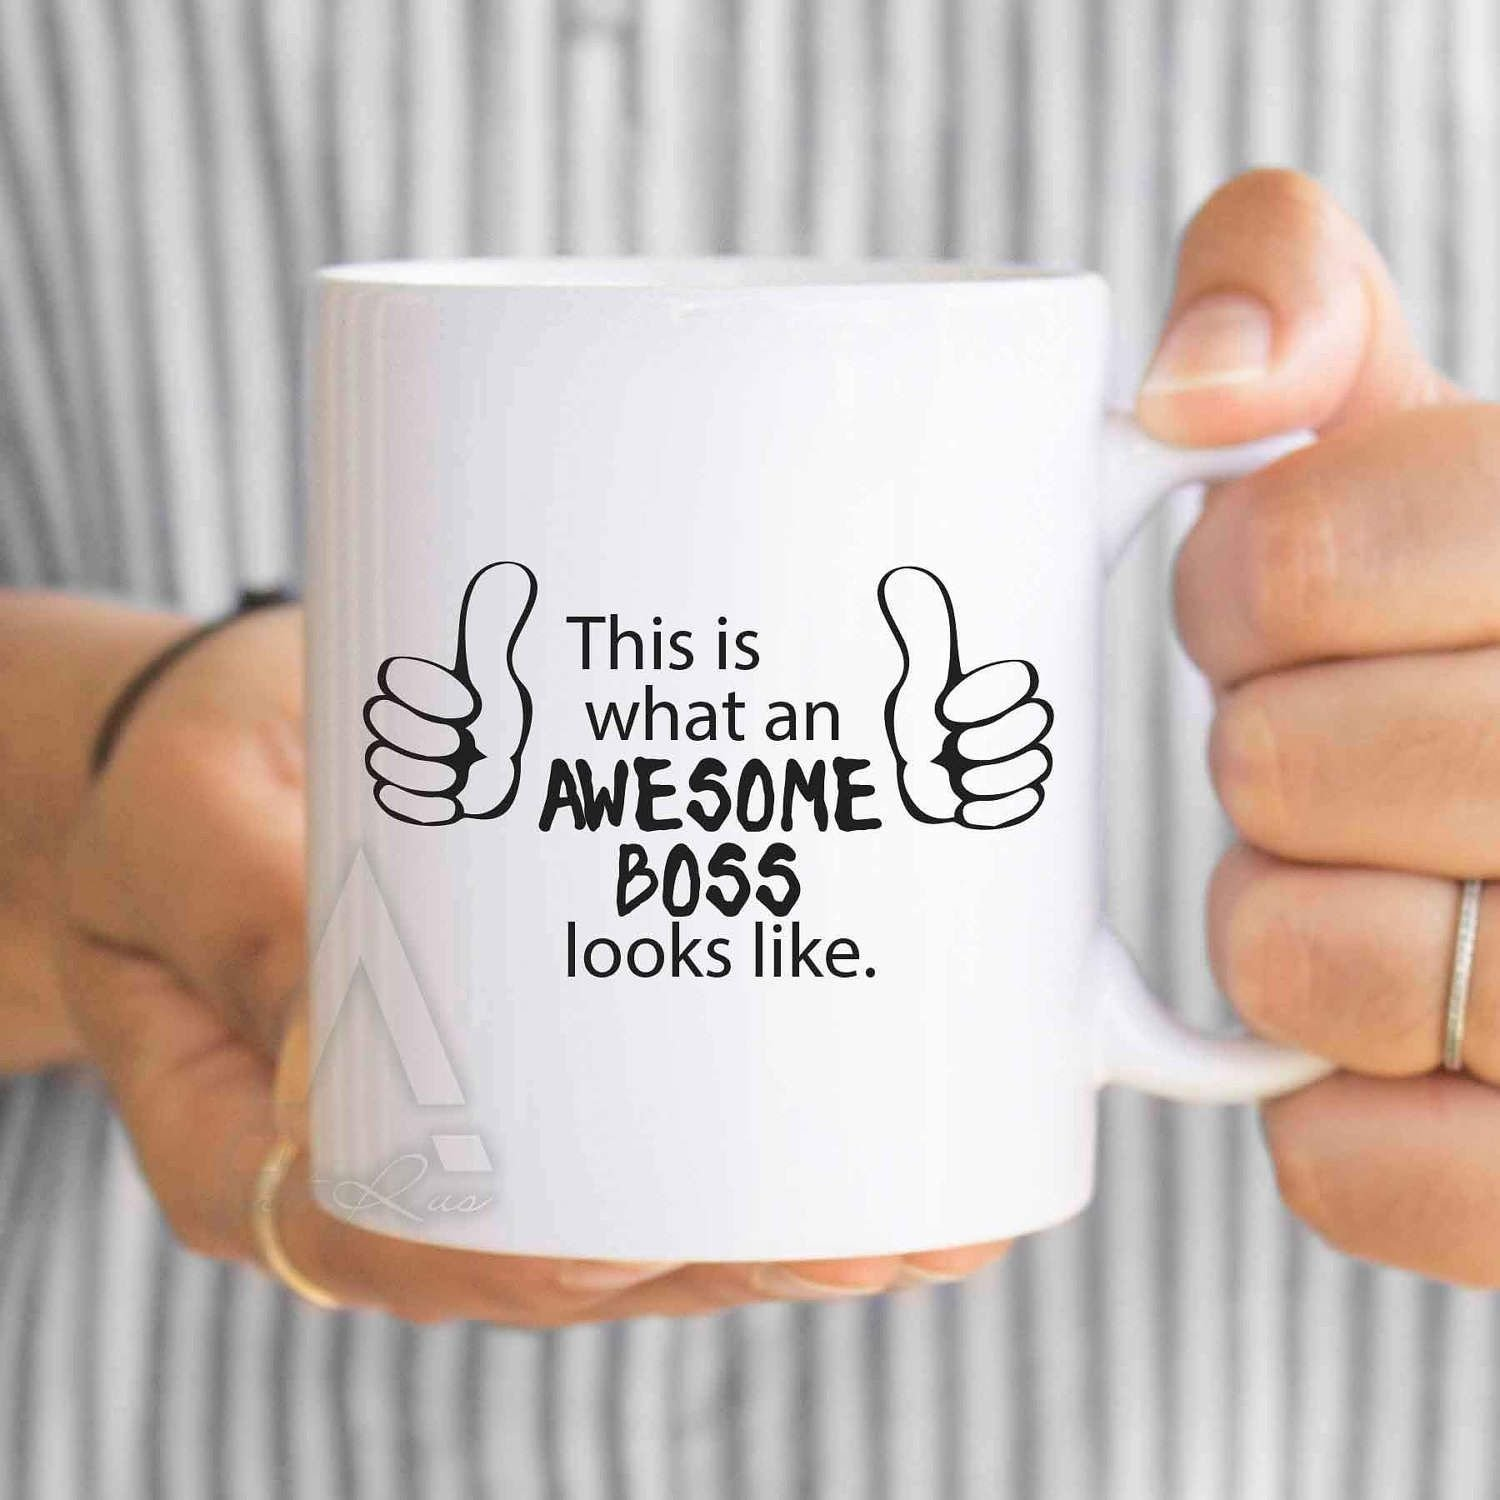 10 Most Recommended Christmas Gift Ideas For Boss boss gifts christmas gifts this is what an awesome boss looks 2021